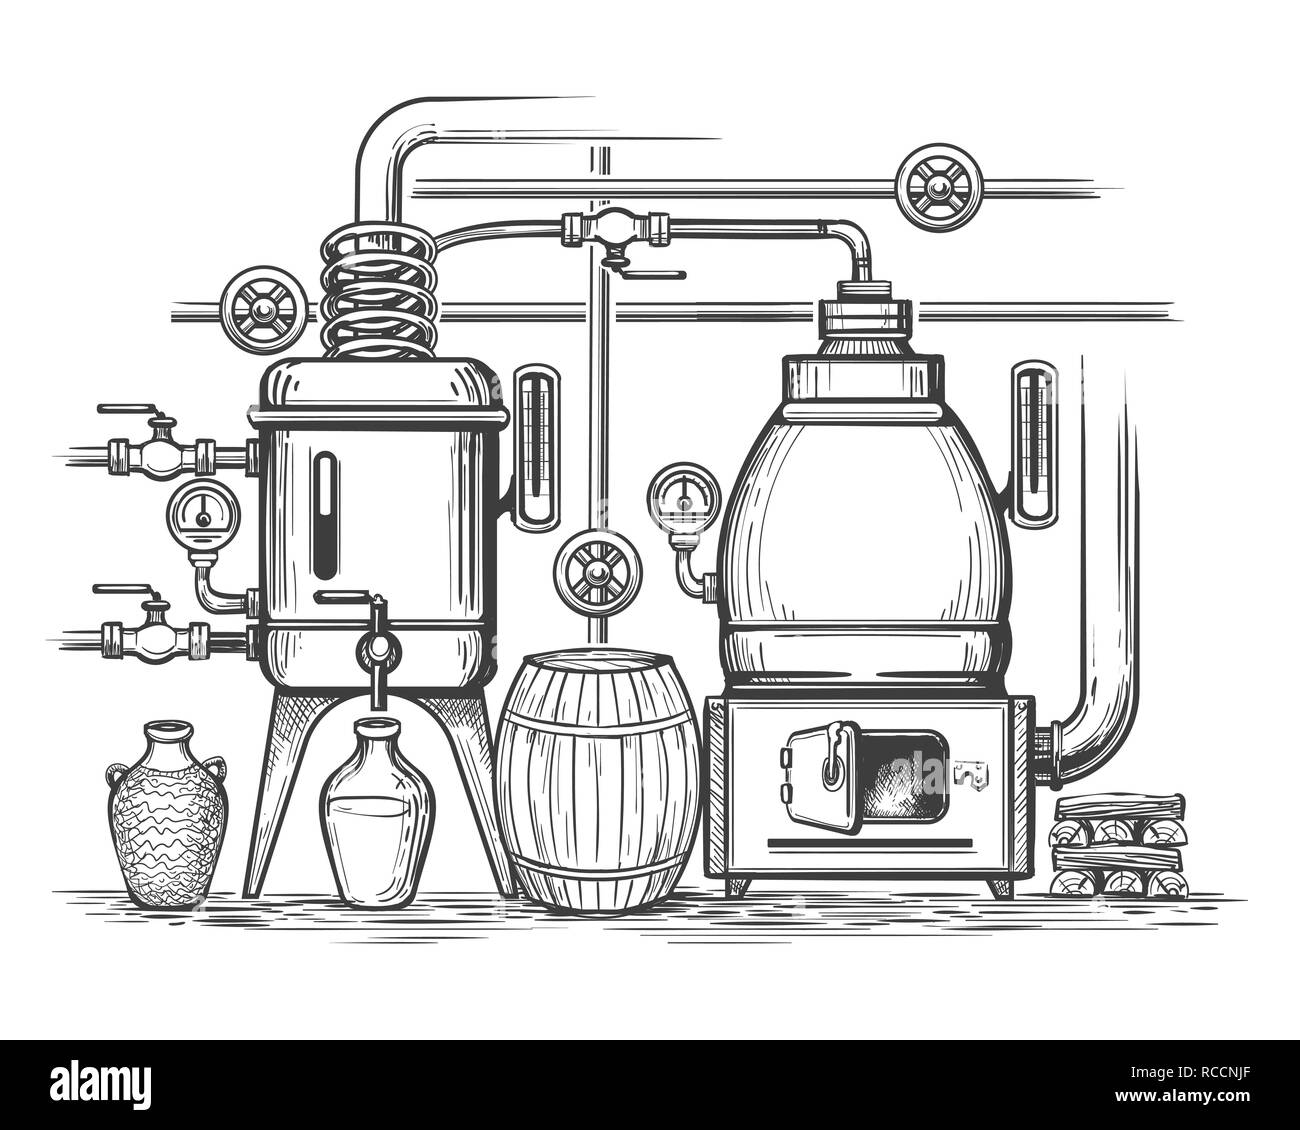 Distillery sketch. Retro stillness gin or whiskey alcohol distillation making equipment, whisky moonshine engraving alembic, vector illustraion - Stock Image